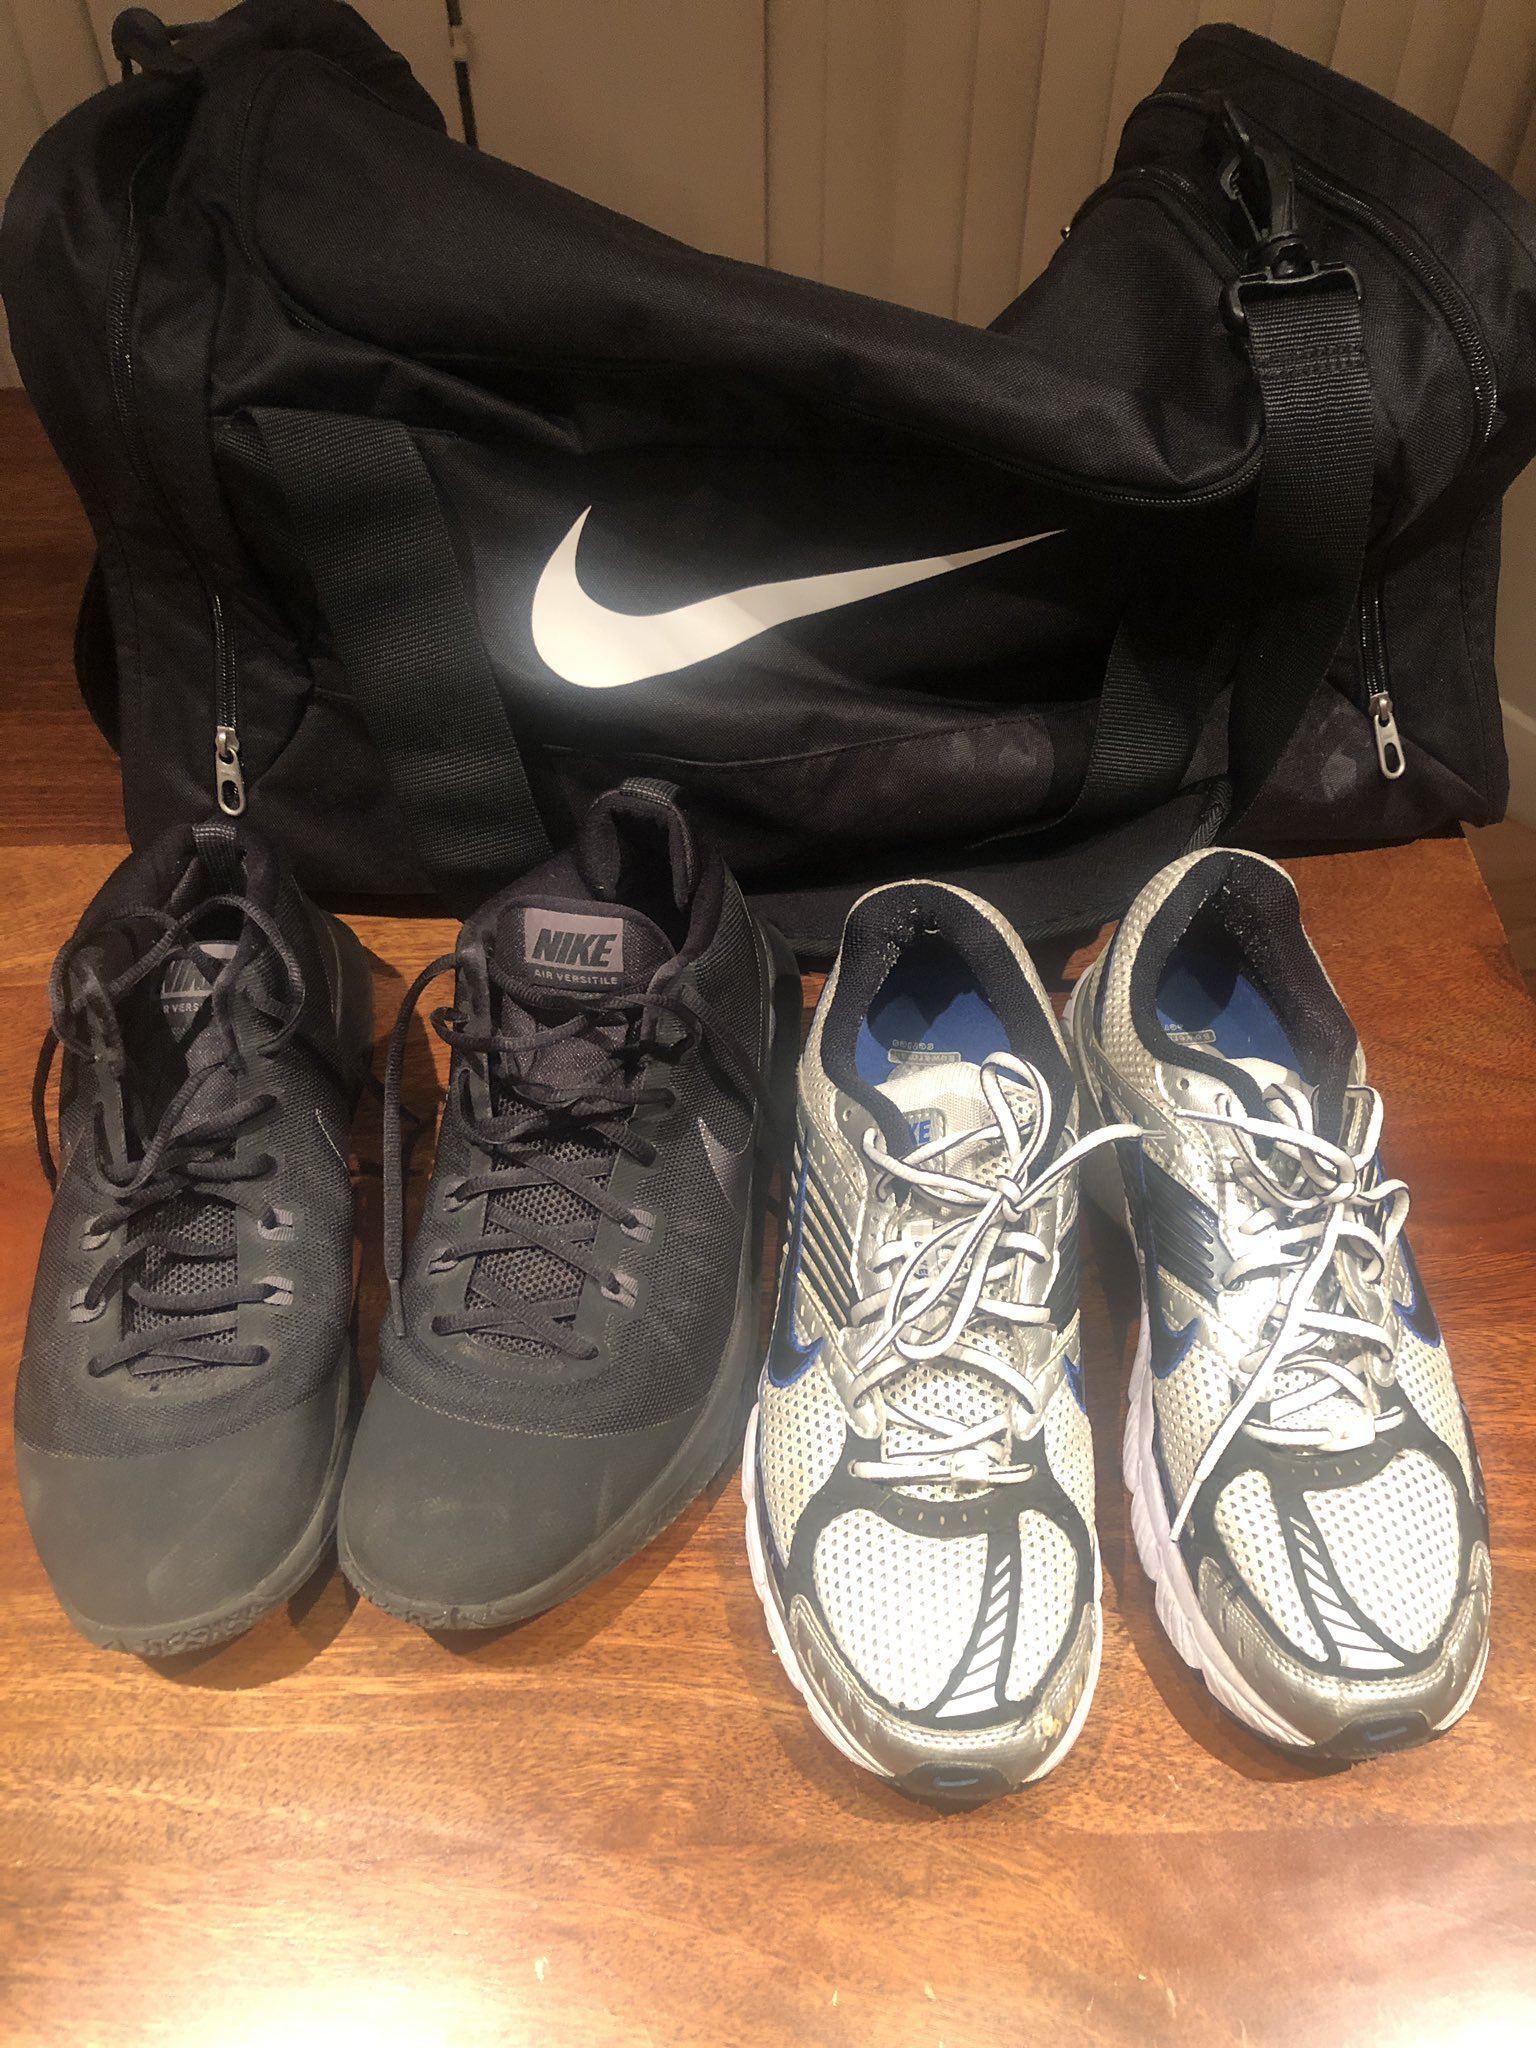 Ted Cruz: This weekend, bought 4 new pairs of sneakers (2 for DC & 2 for Houston) & a new gym bag...